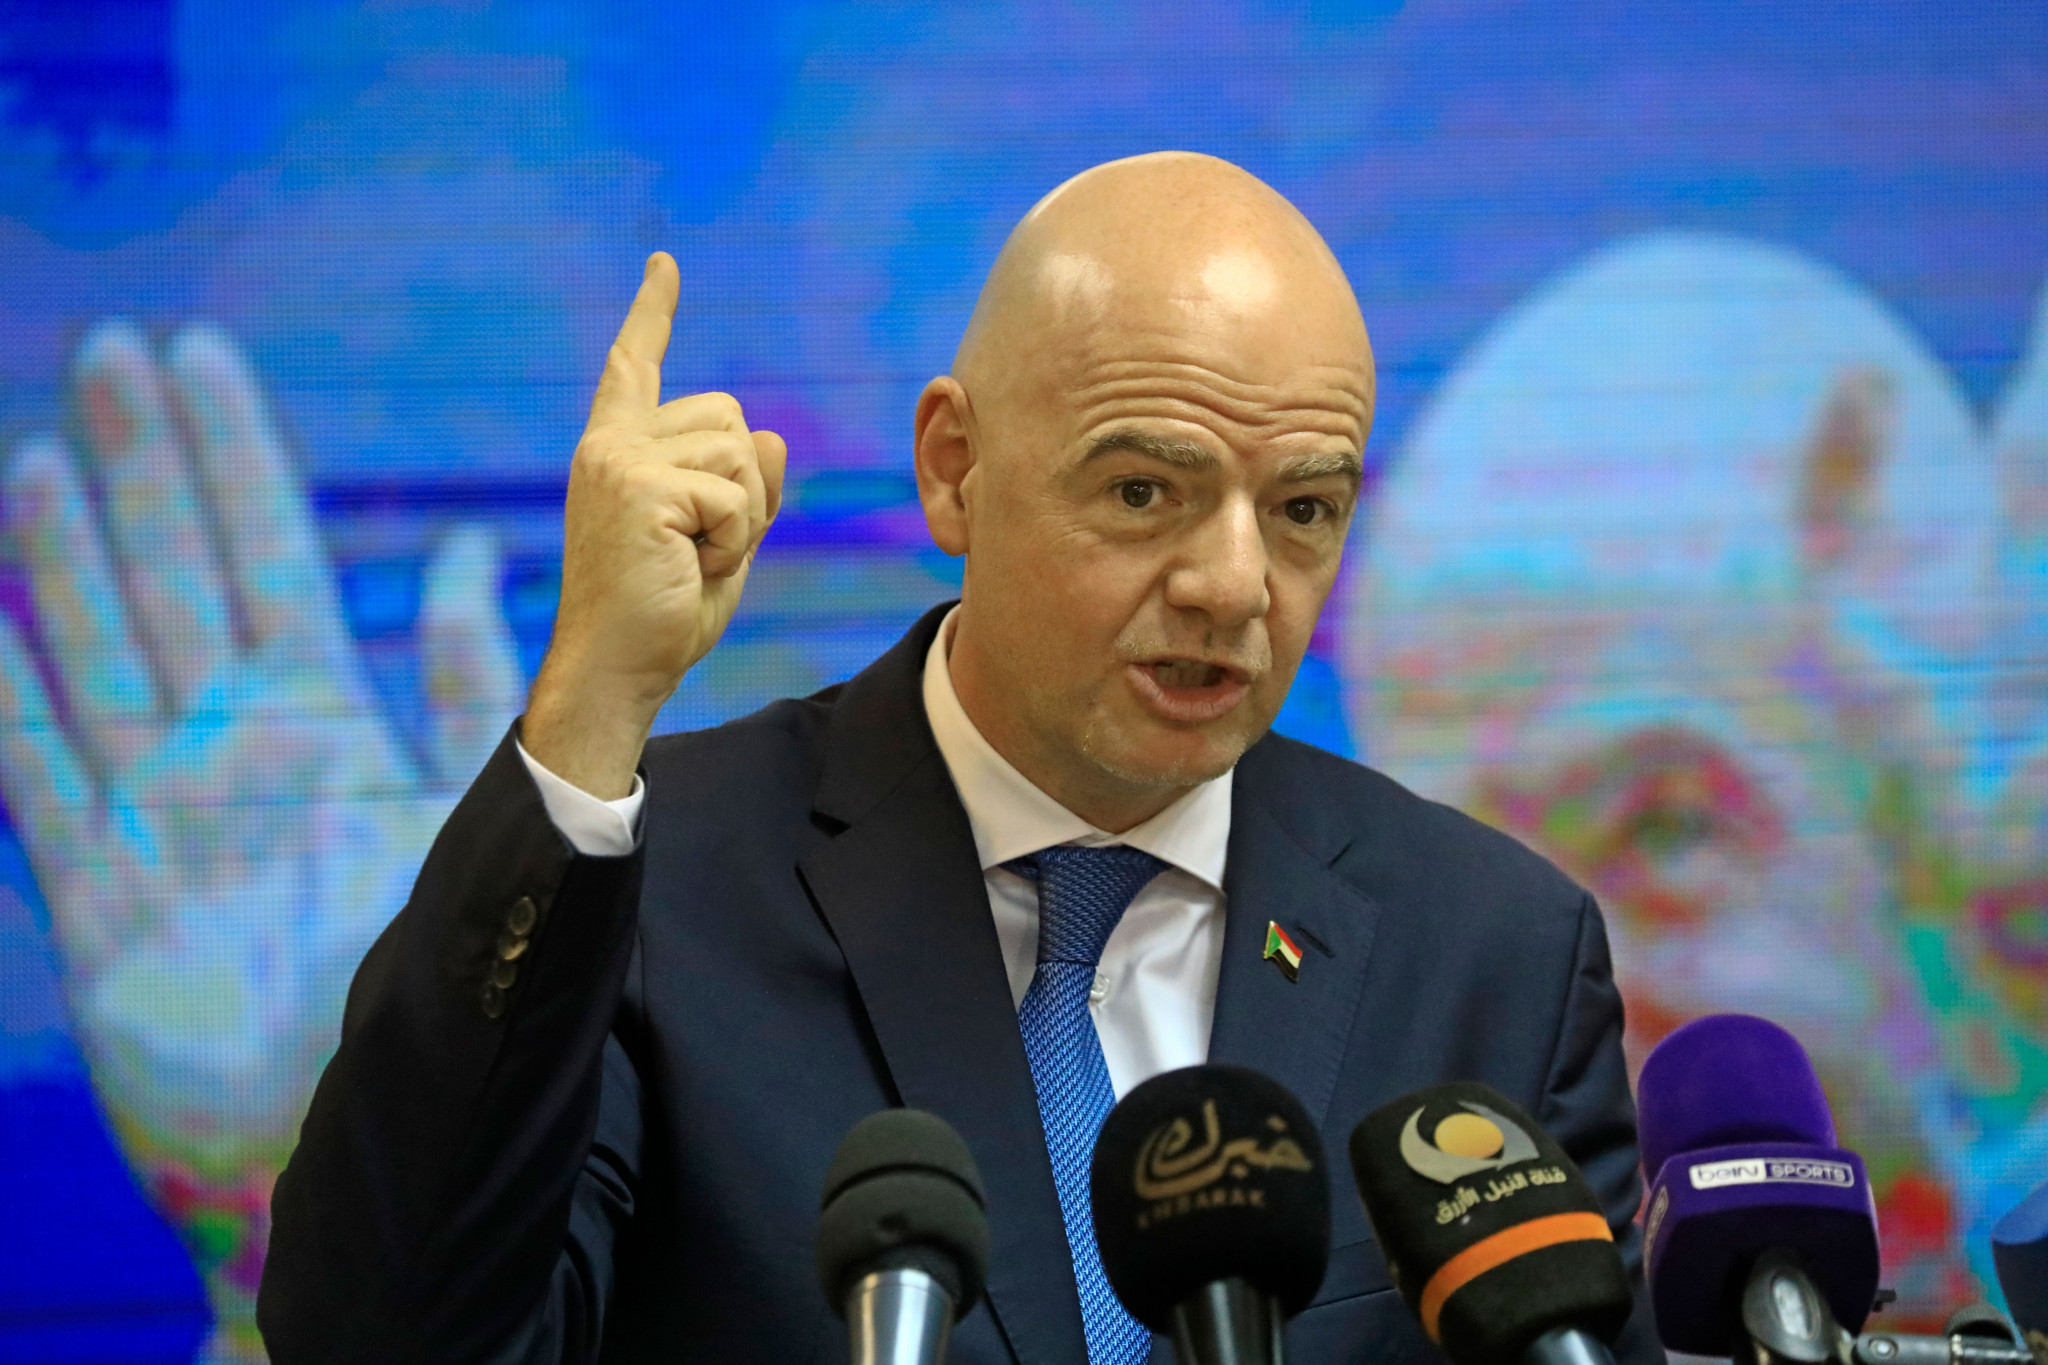 FIFA President Infantino addresses reforms to tackle corruption at G20